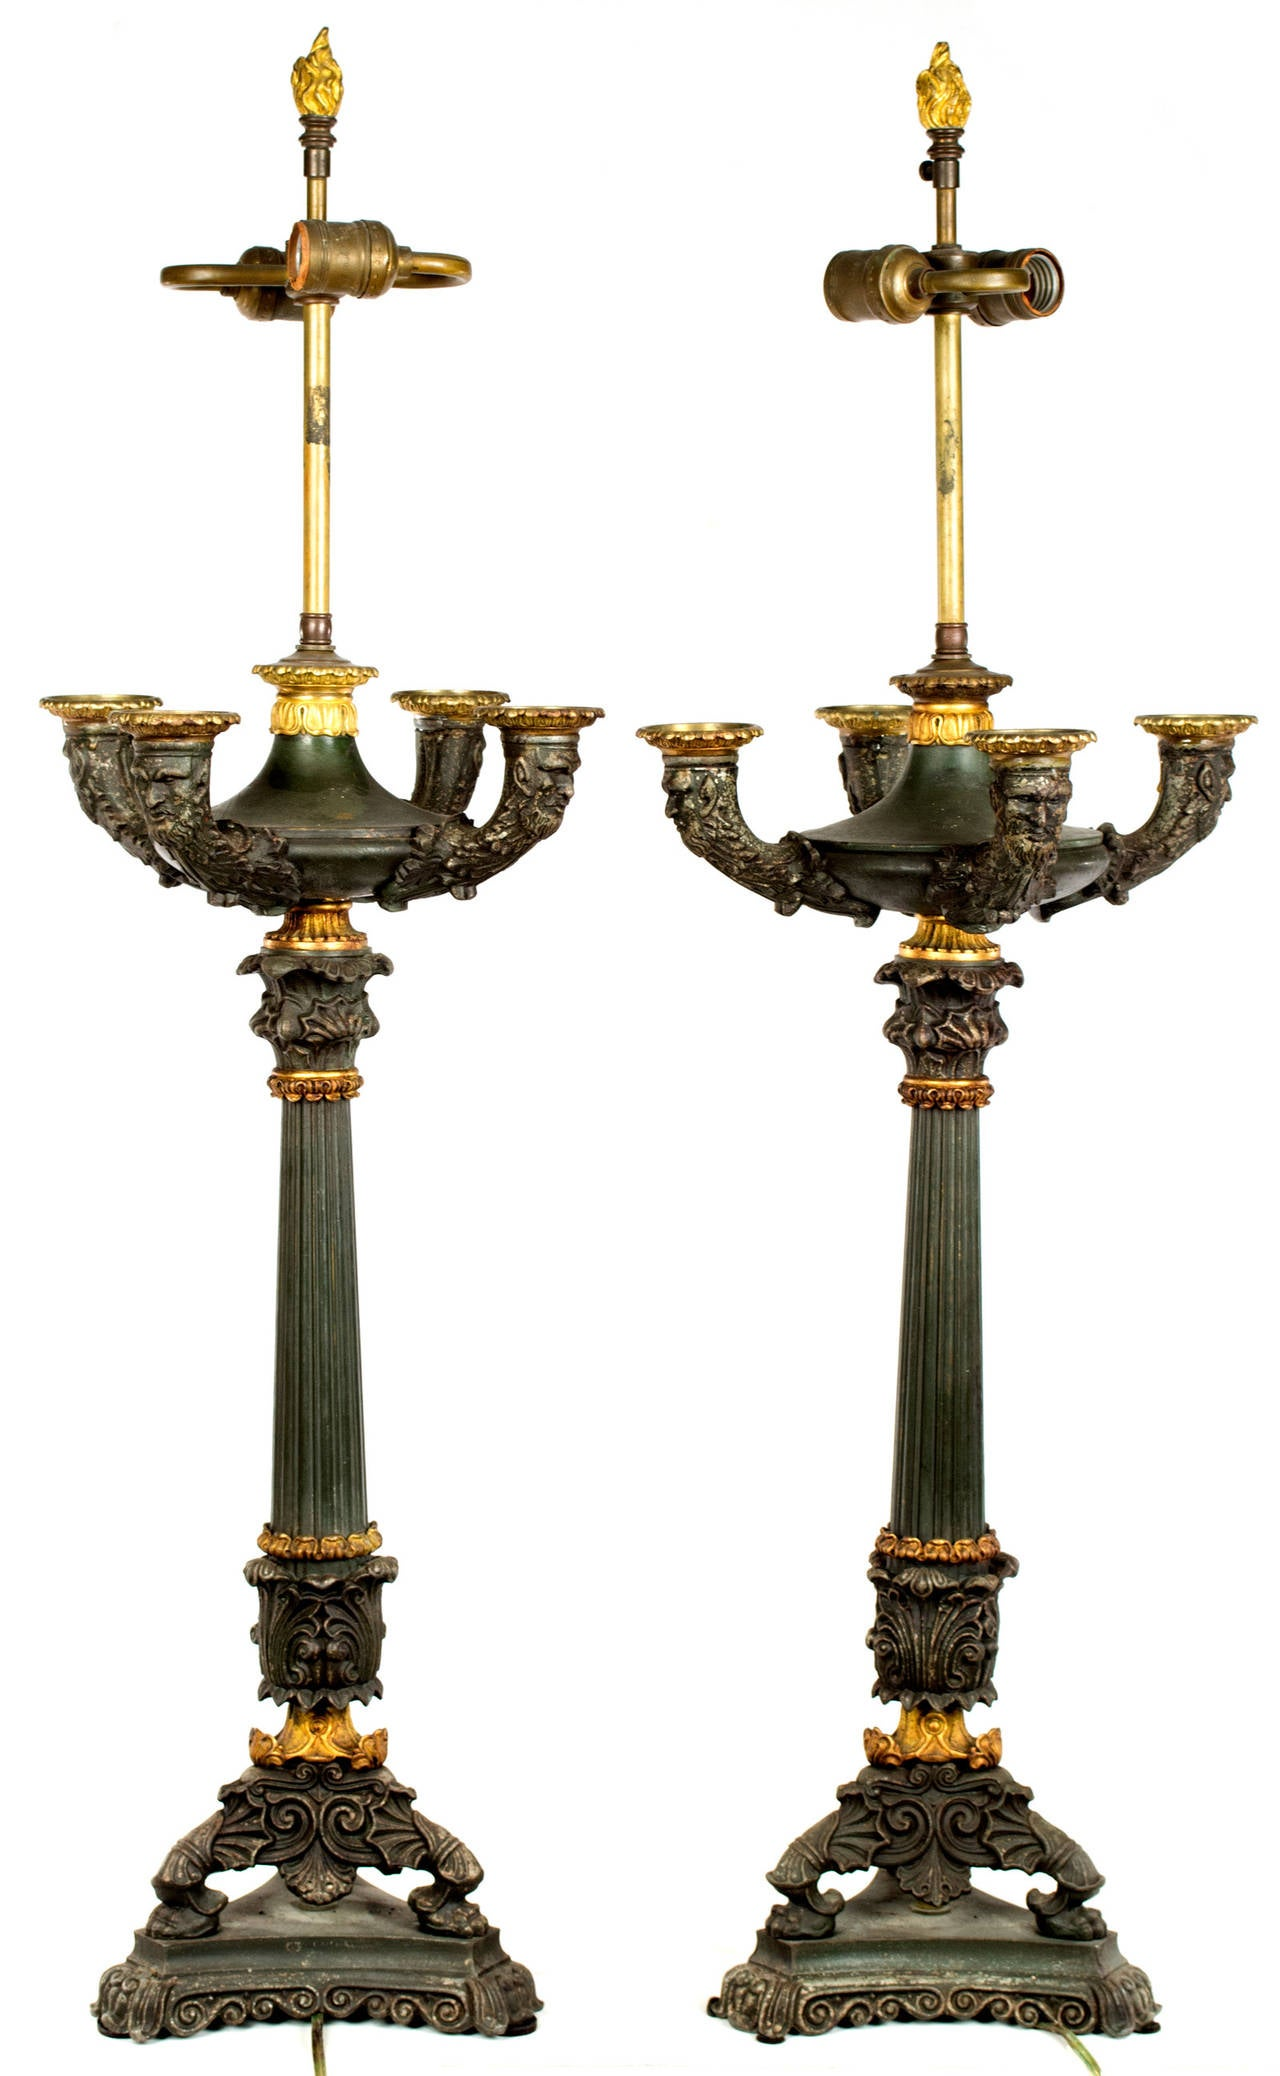 Two lamped bronze Renaissance revival candelabras, each with four arms terminating in masks topped with gilt bronze bobeches. The arms sit atop a fluted column decorated with acanthus leaves and standing on three legs atop a pedestal.